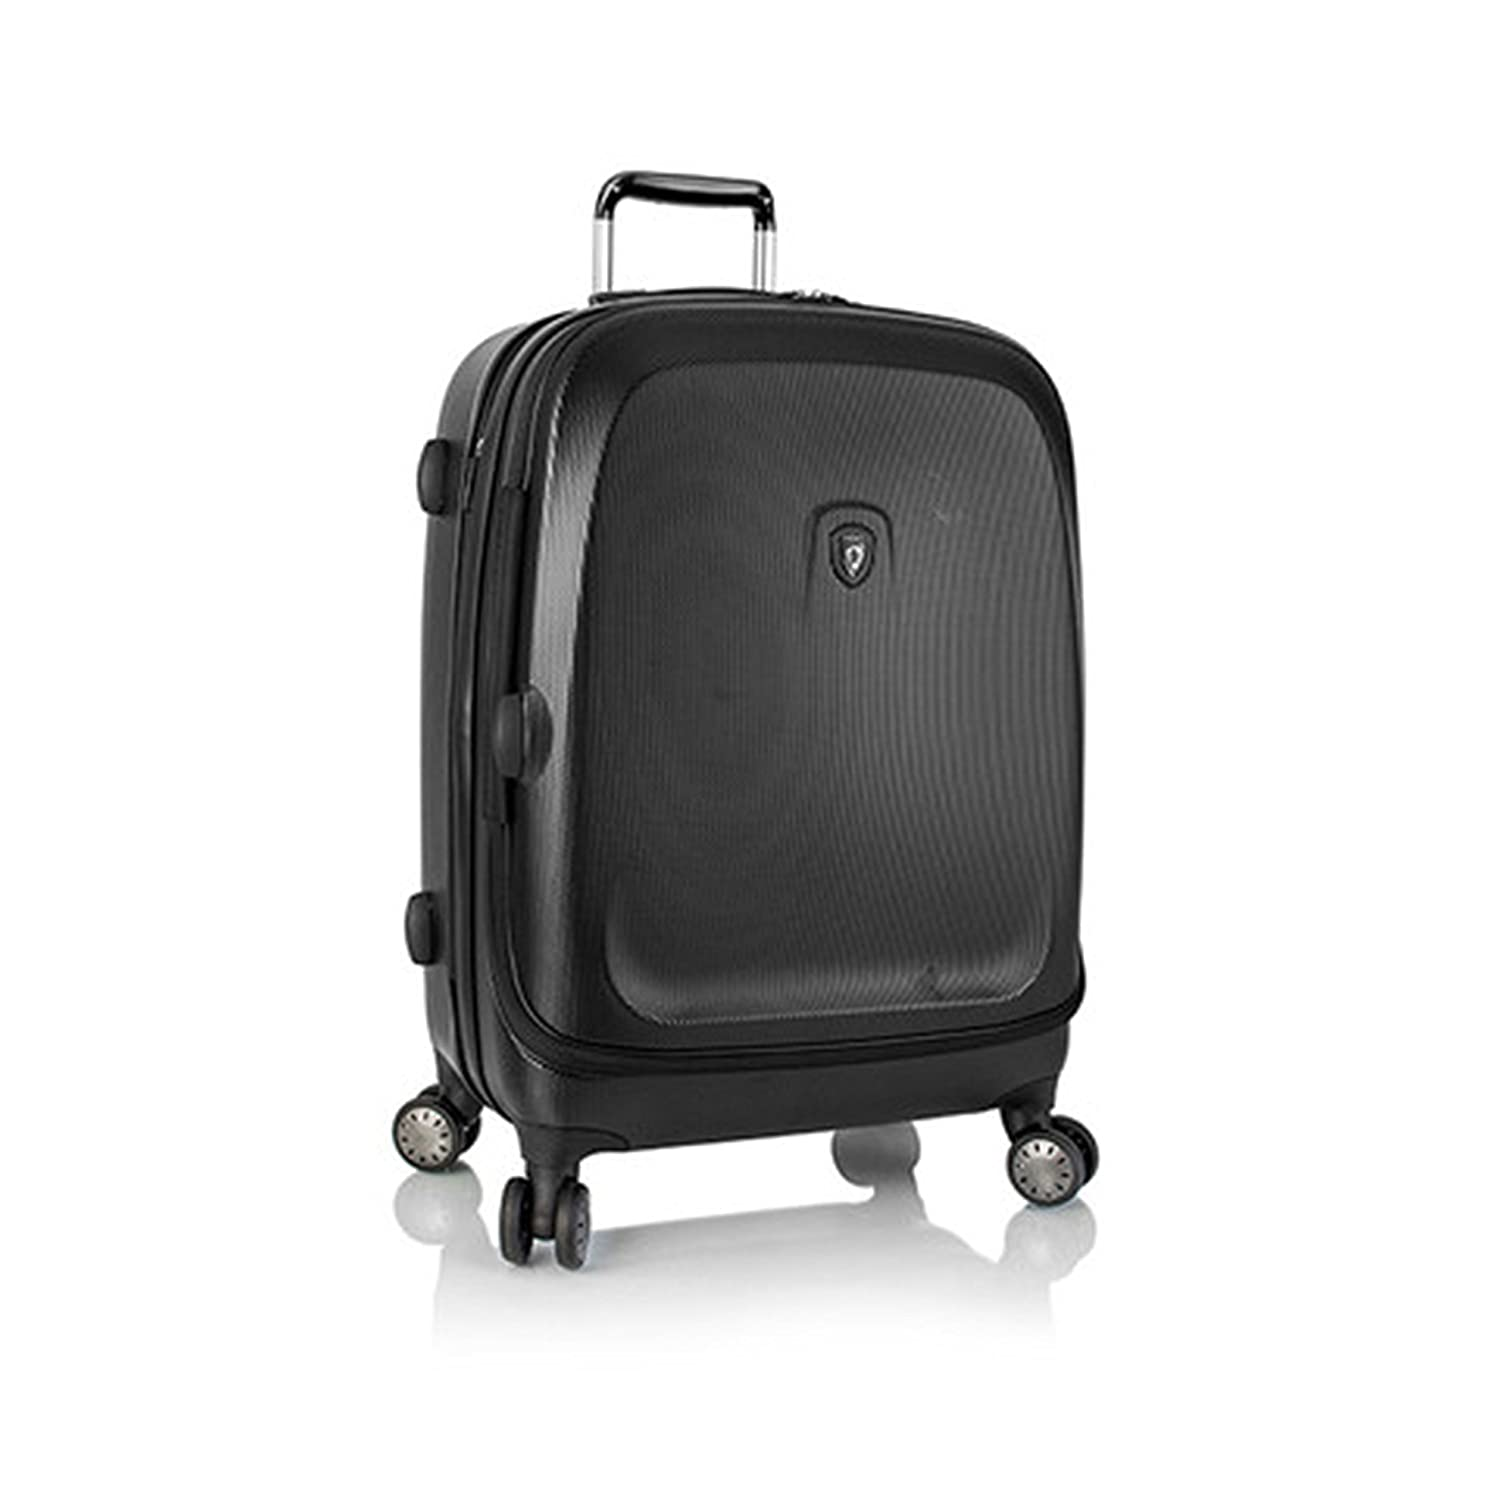 Heys – Crown Smart Gateway Schwarz Trolley mit 4 Rollen Medium günstig online kaufen